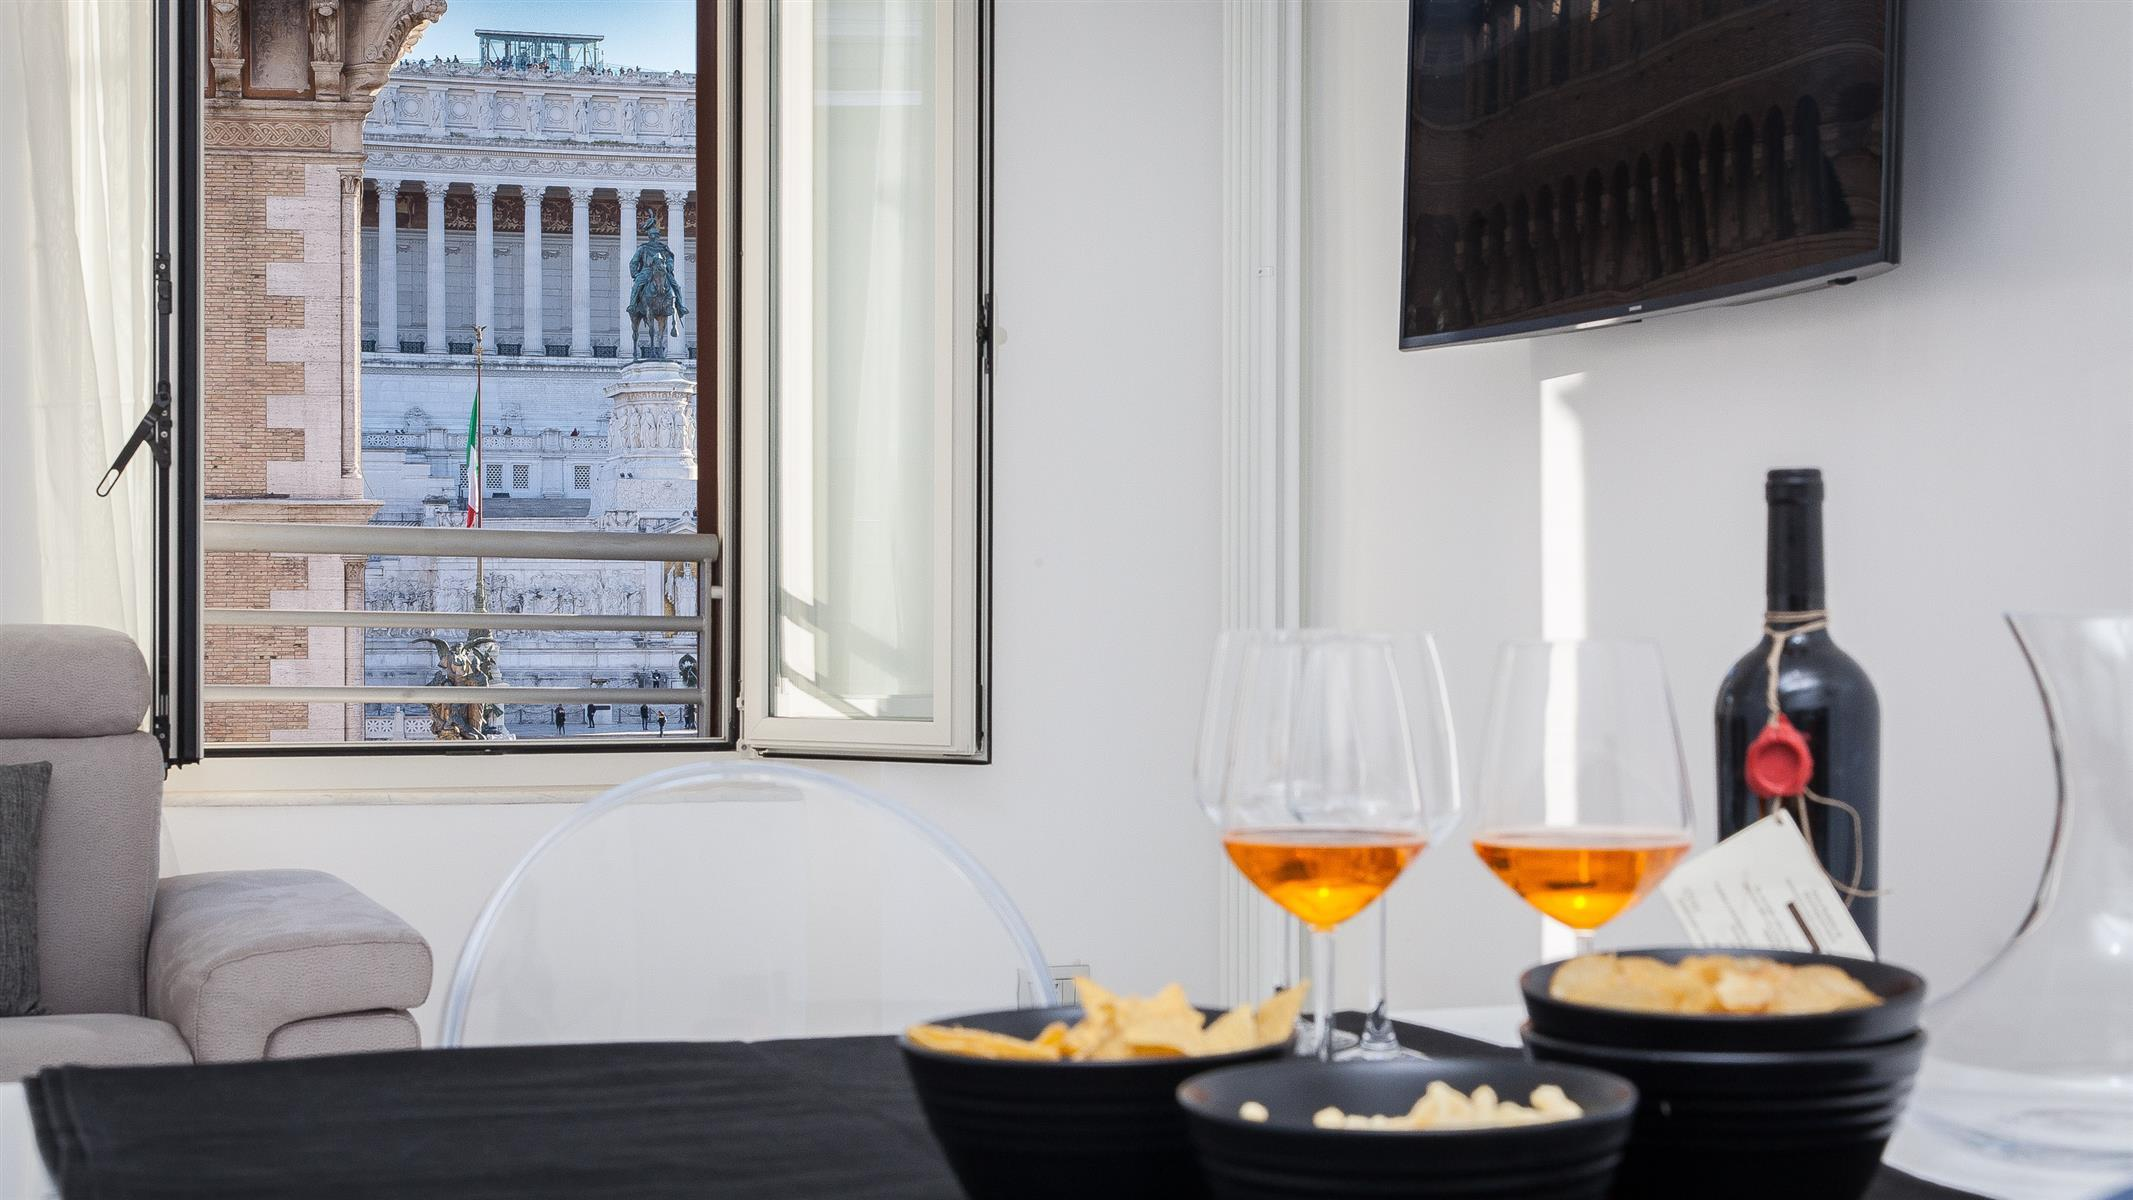 Holiday Apartments For Rent In Rome Rome Rentals Rentalinromecom